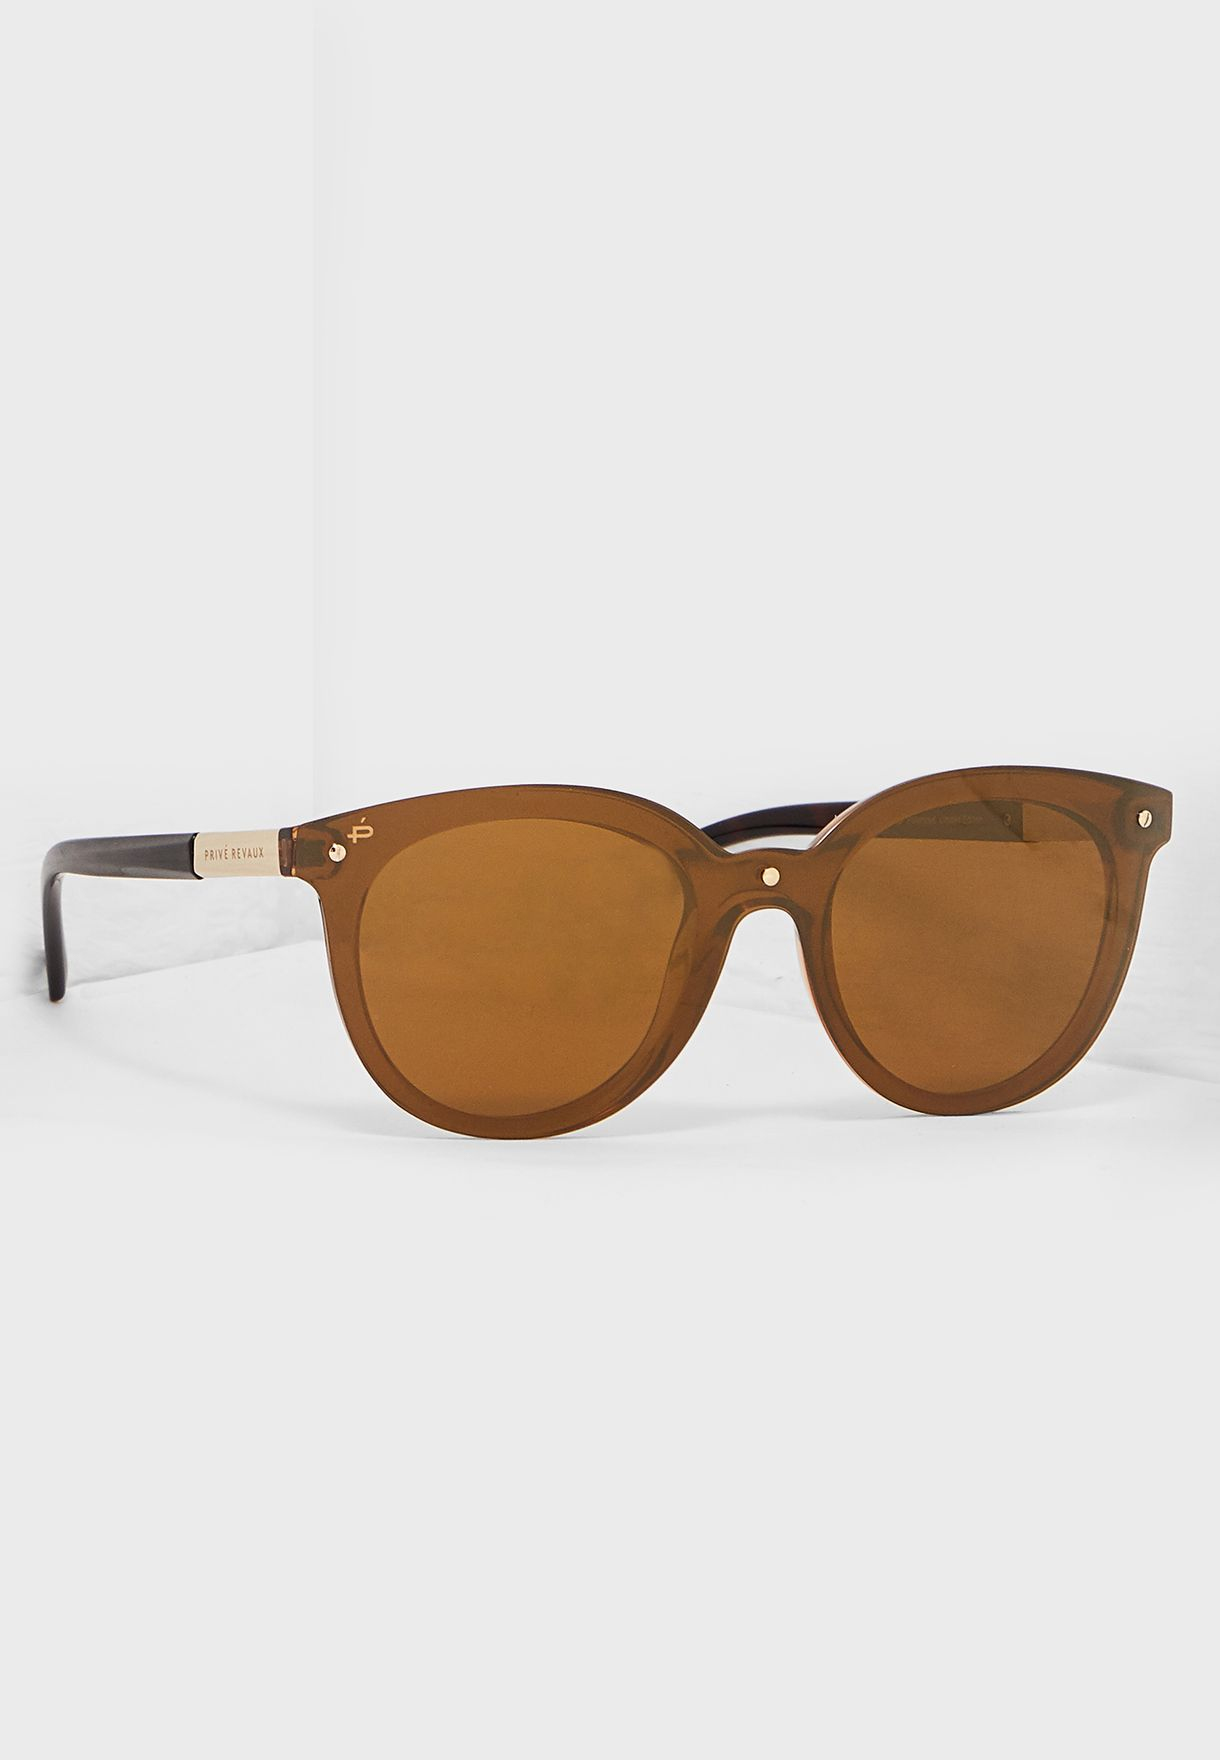 The Casablanca Cateye Sunglasses